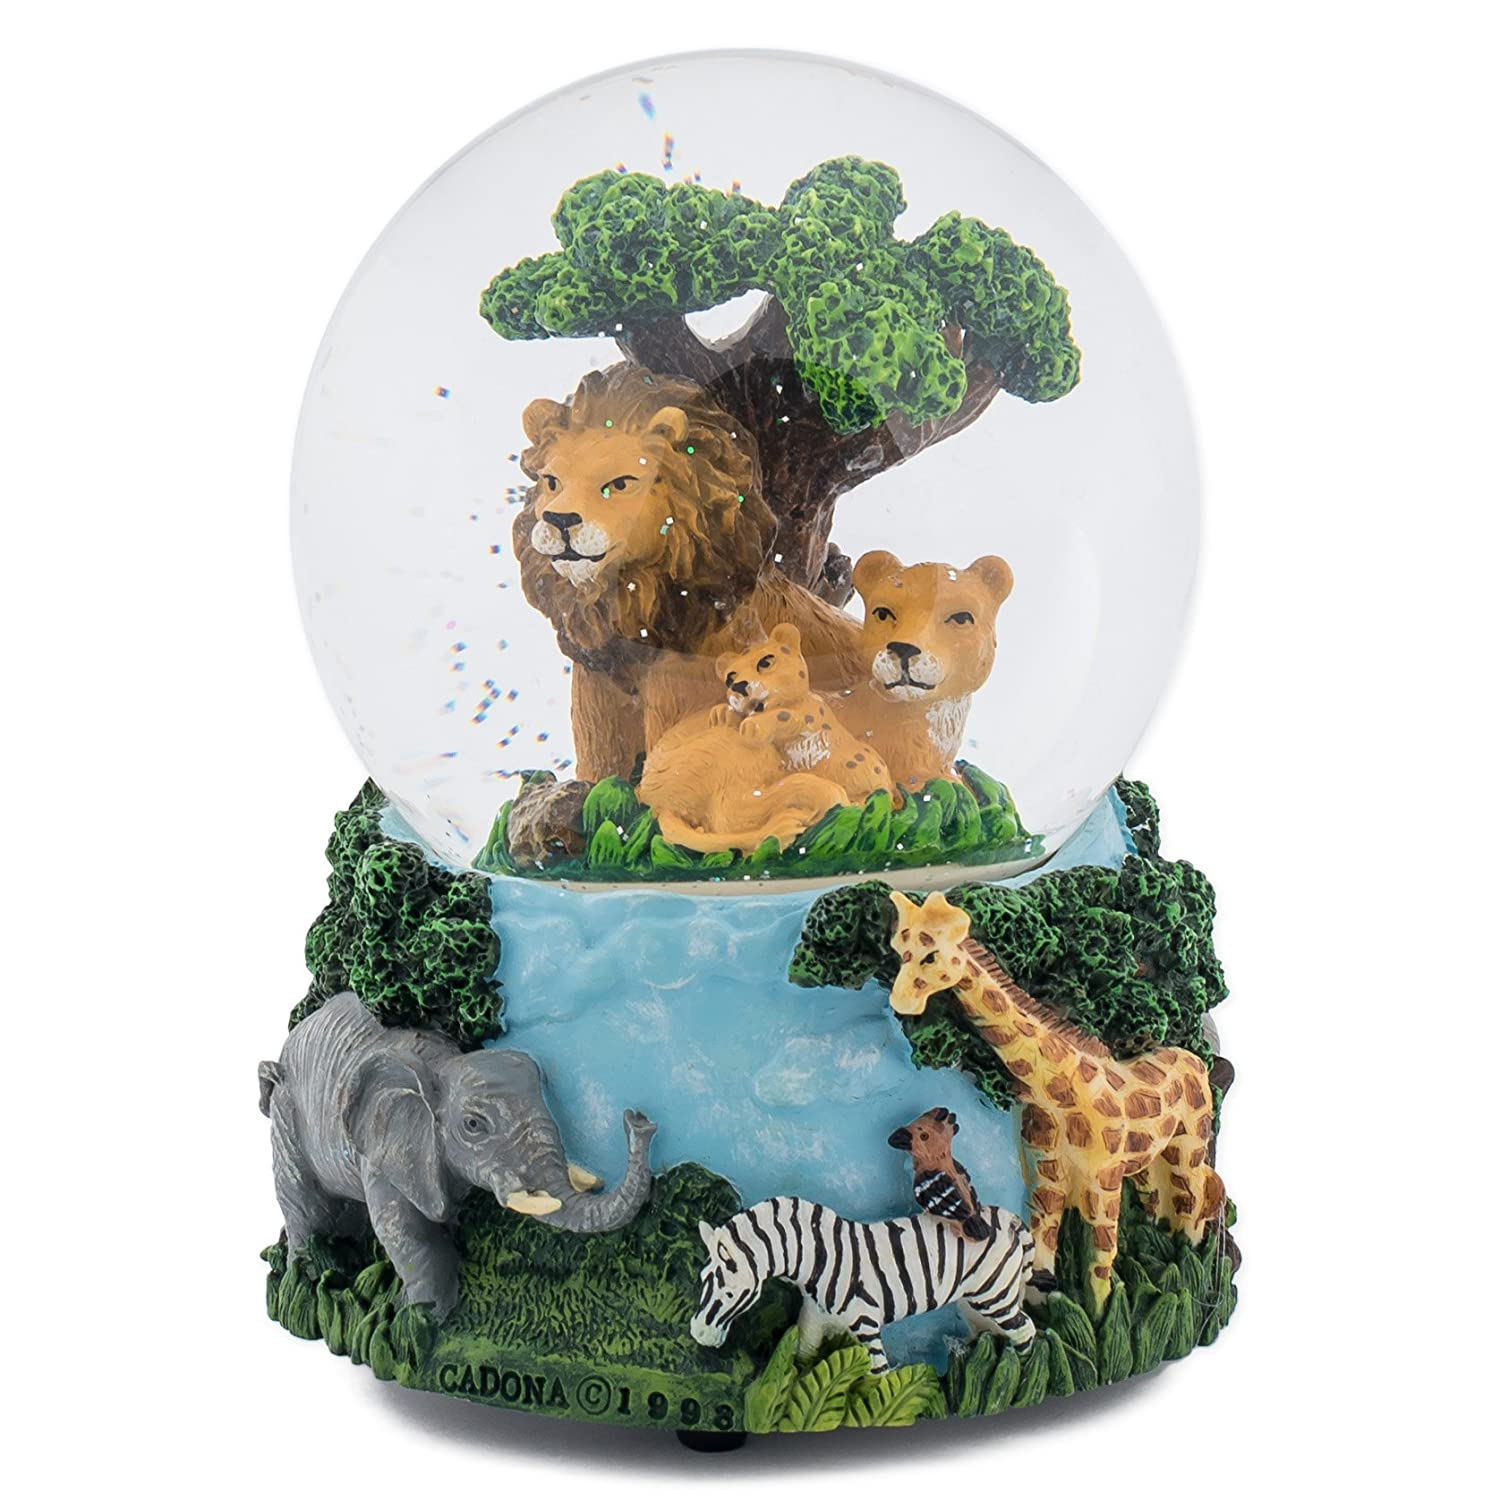 Lions Zebras Elephants and Giraffes Music Water Globe Plays Tune Circle of Life Cadona International 36046A